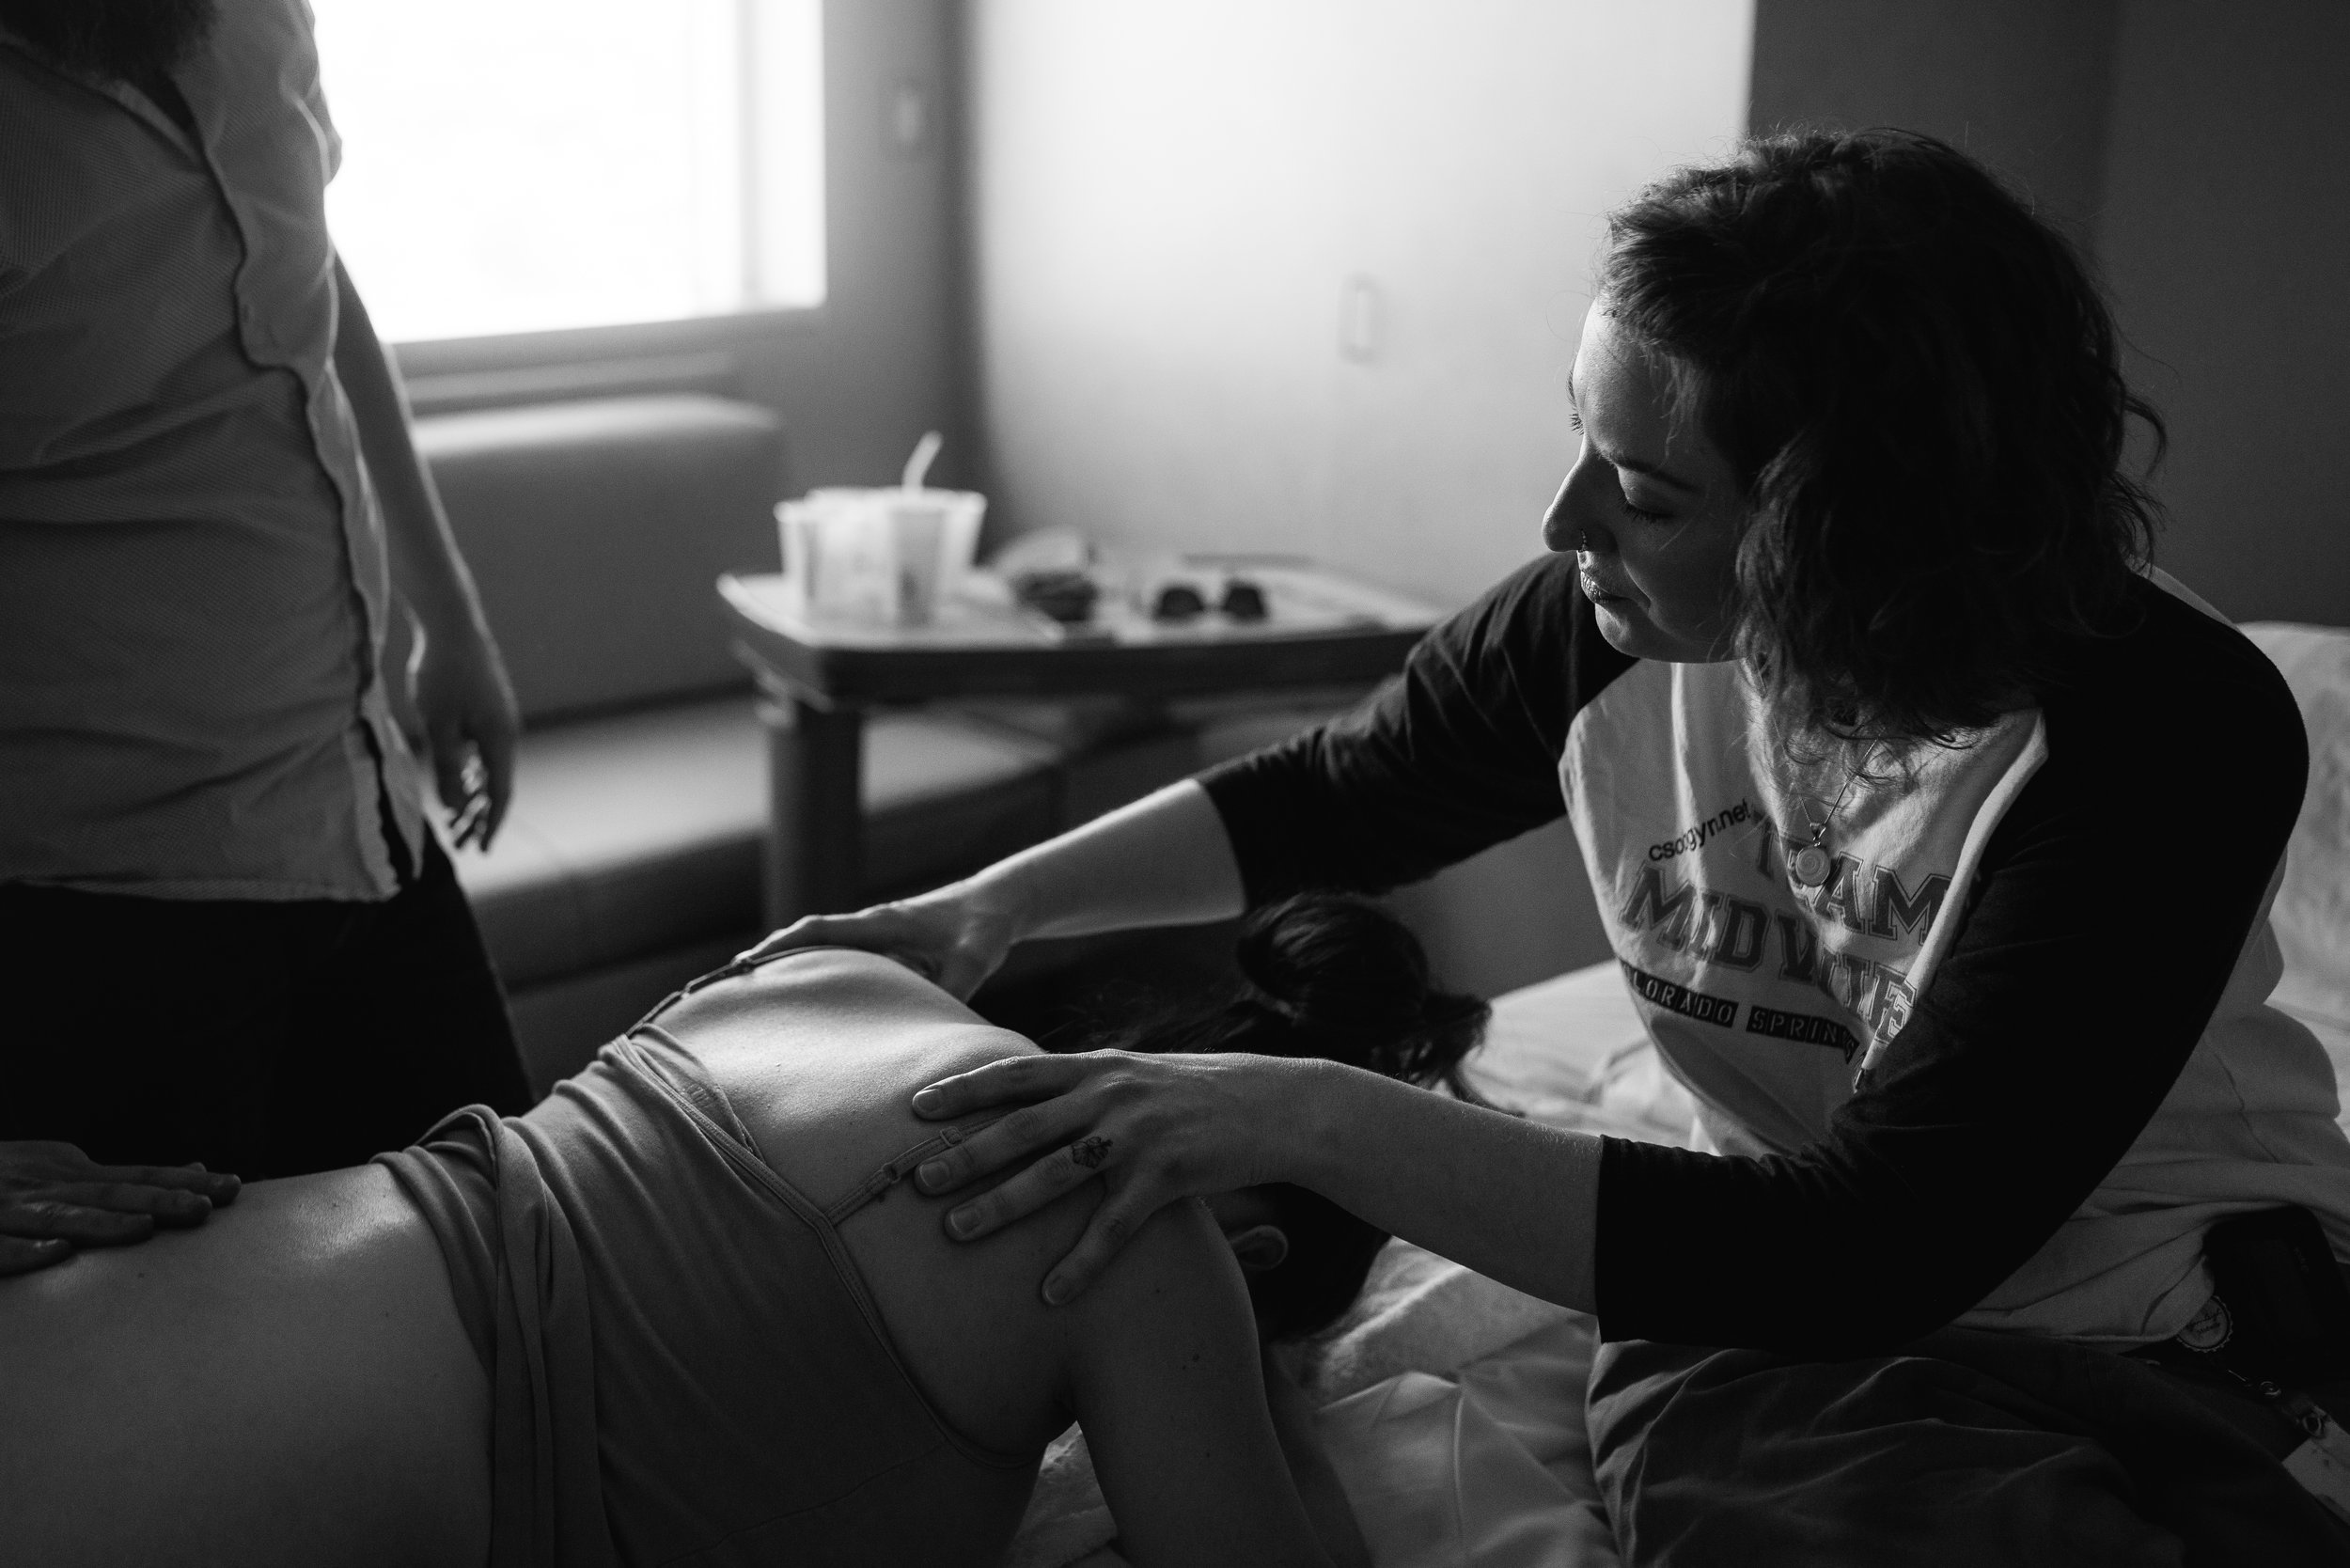 Midwife Pictured: Megan Dickey https://www.facebook.com/groups/101594306904551/